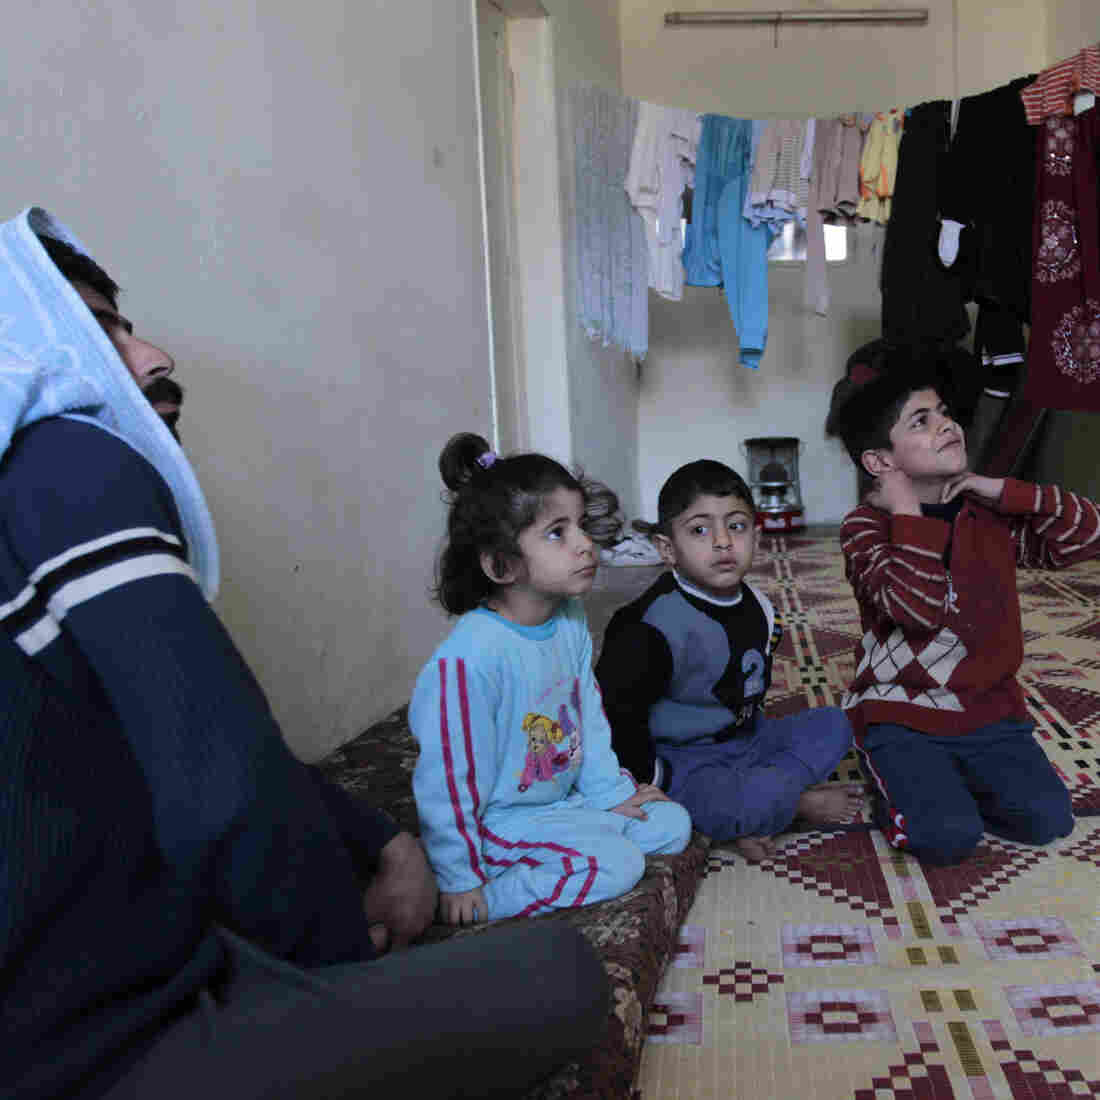 A family of Syrian refugees in a camp set up near the Jordanian city of Mafraq, near the Syrian border. Jordan has welcomed Syrian refugees, but has limited resources to help them.